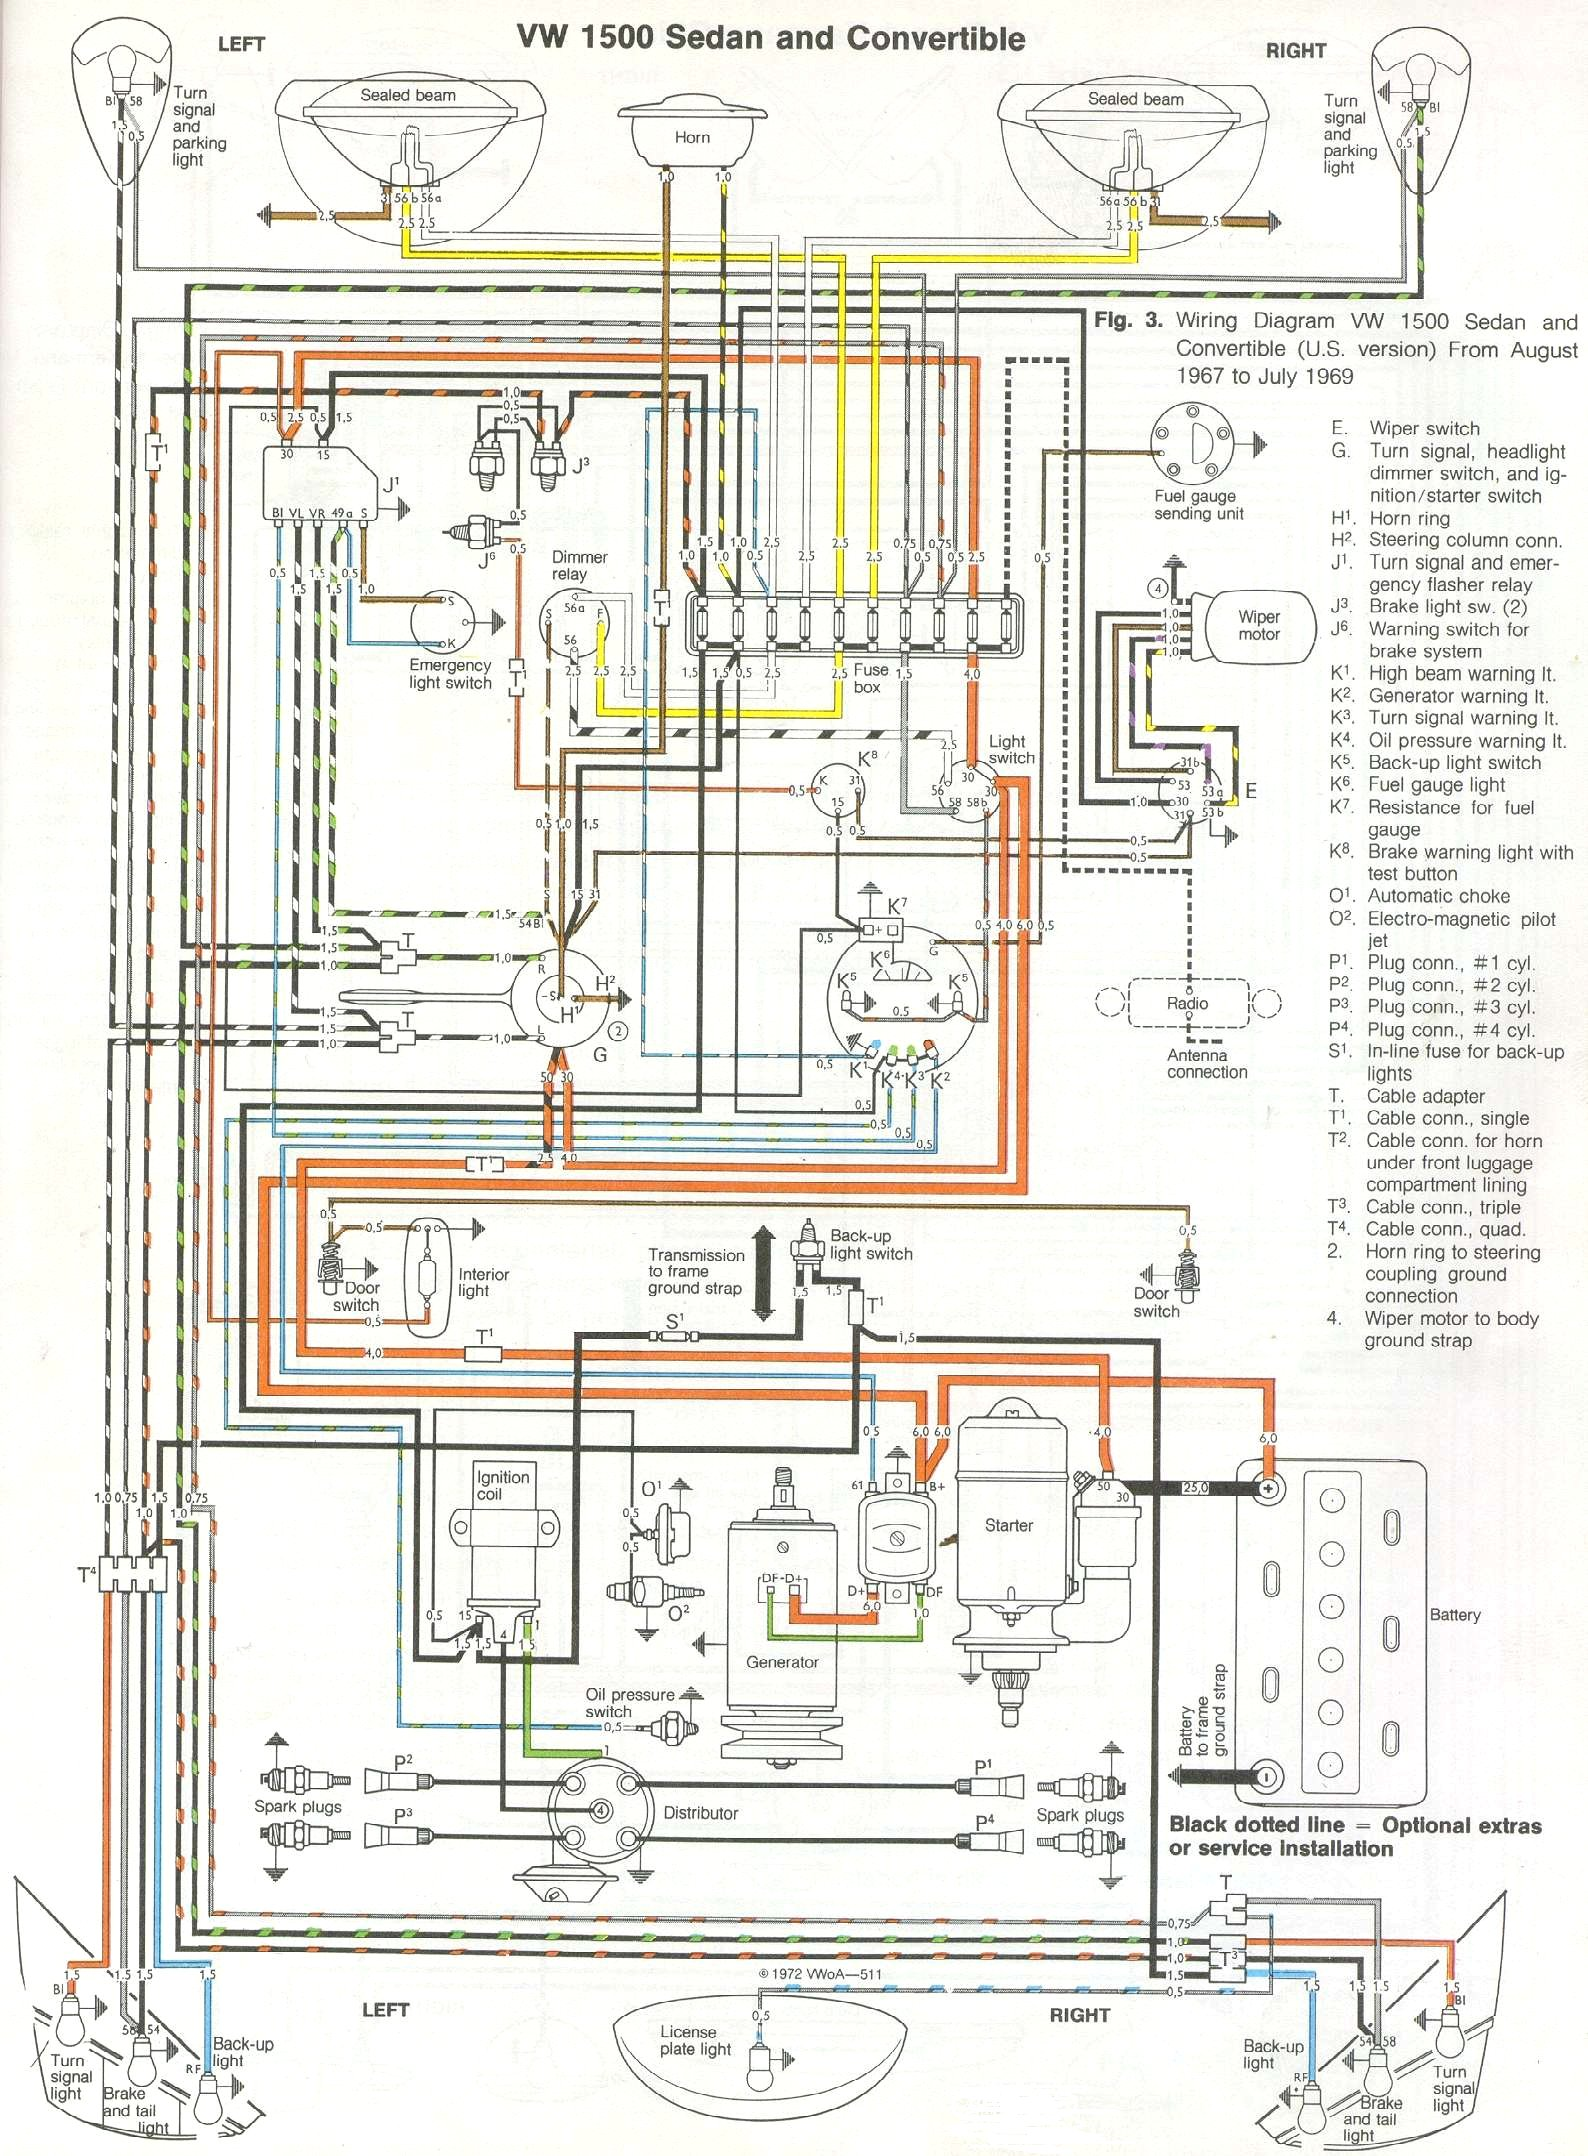 bug_6869 1969 71 beetle wiring diagram thegoldenbug com 1971 vw beetle wiring diagram at nearapp.co